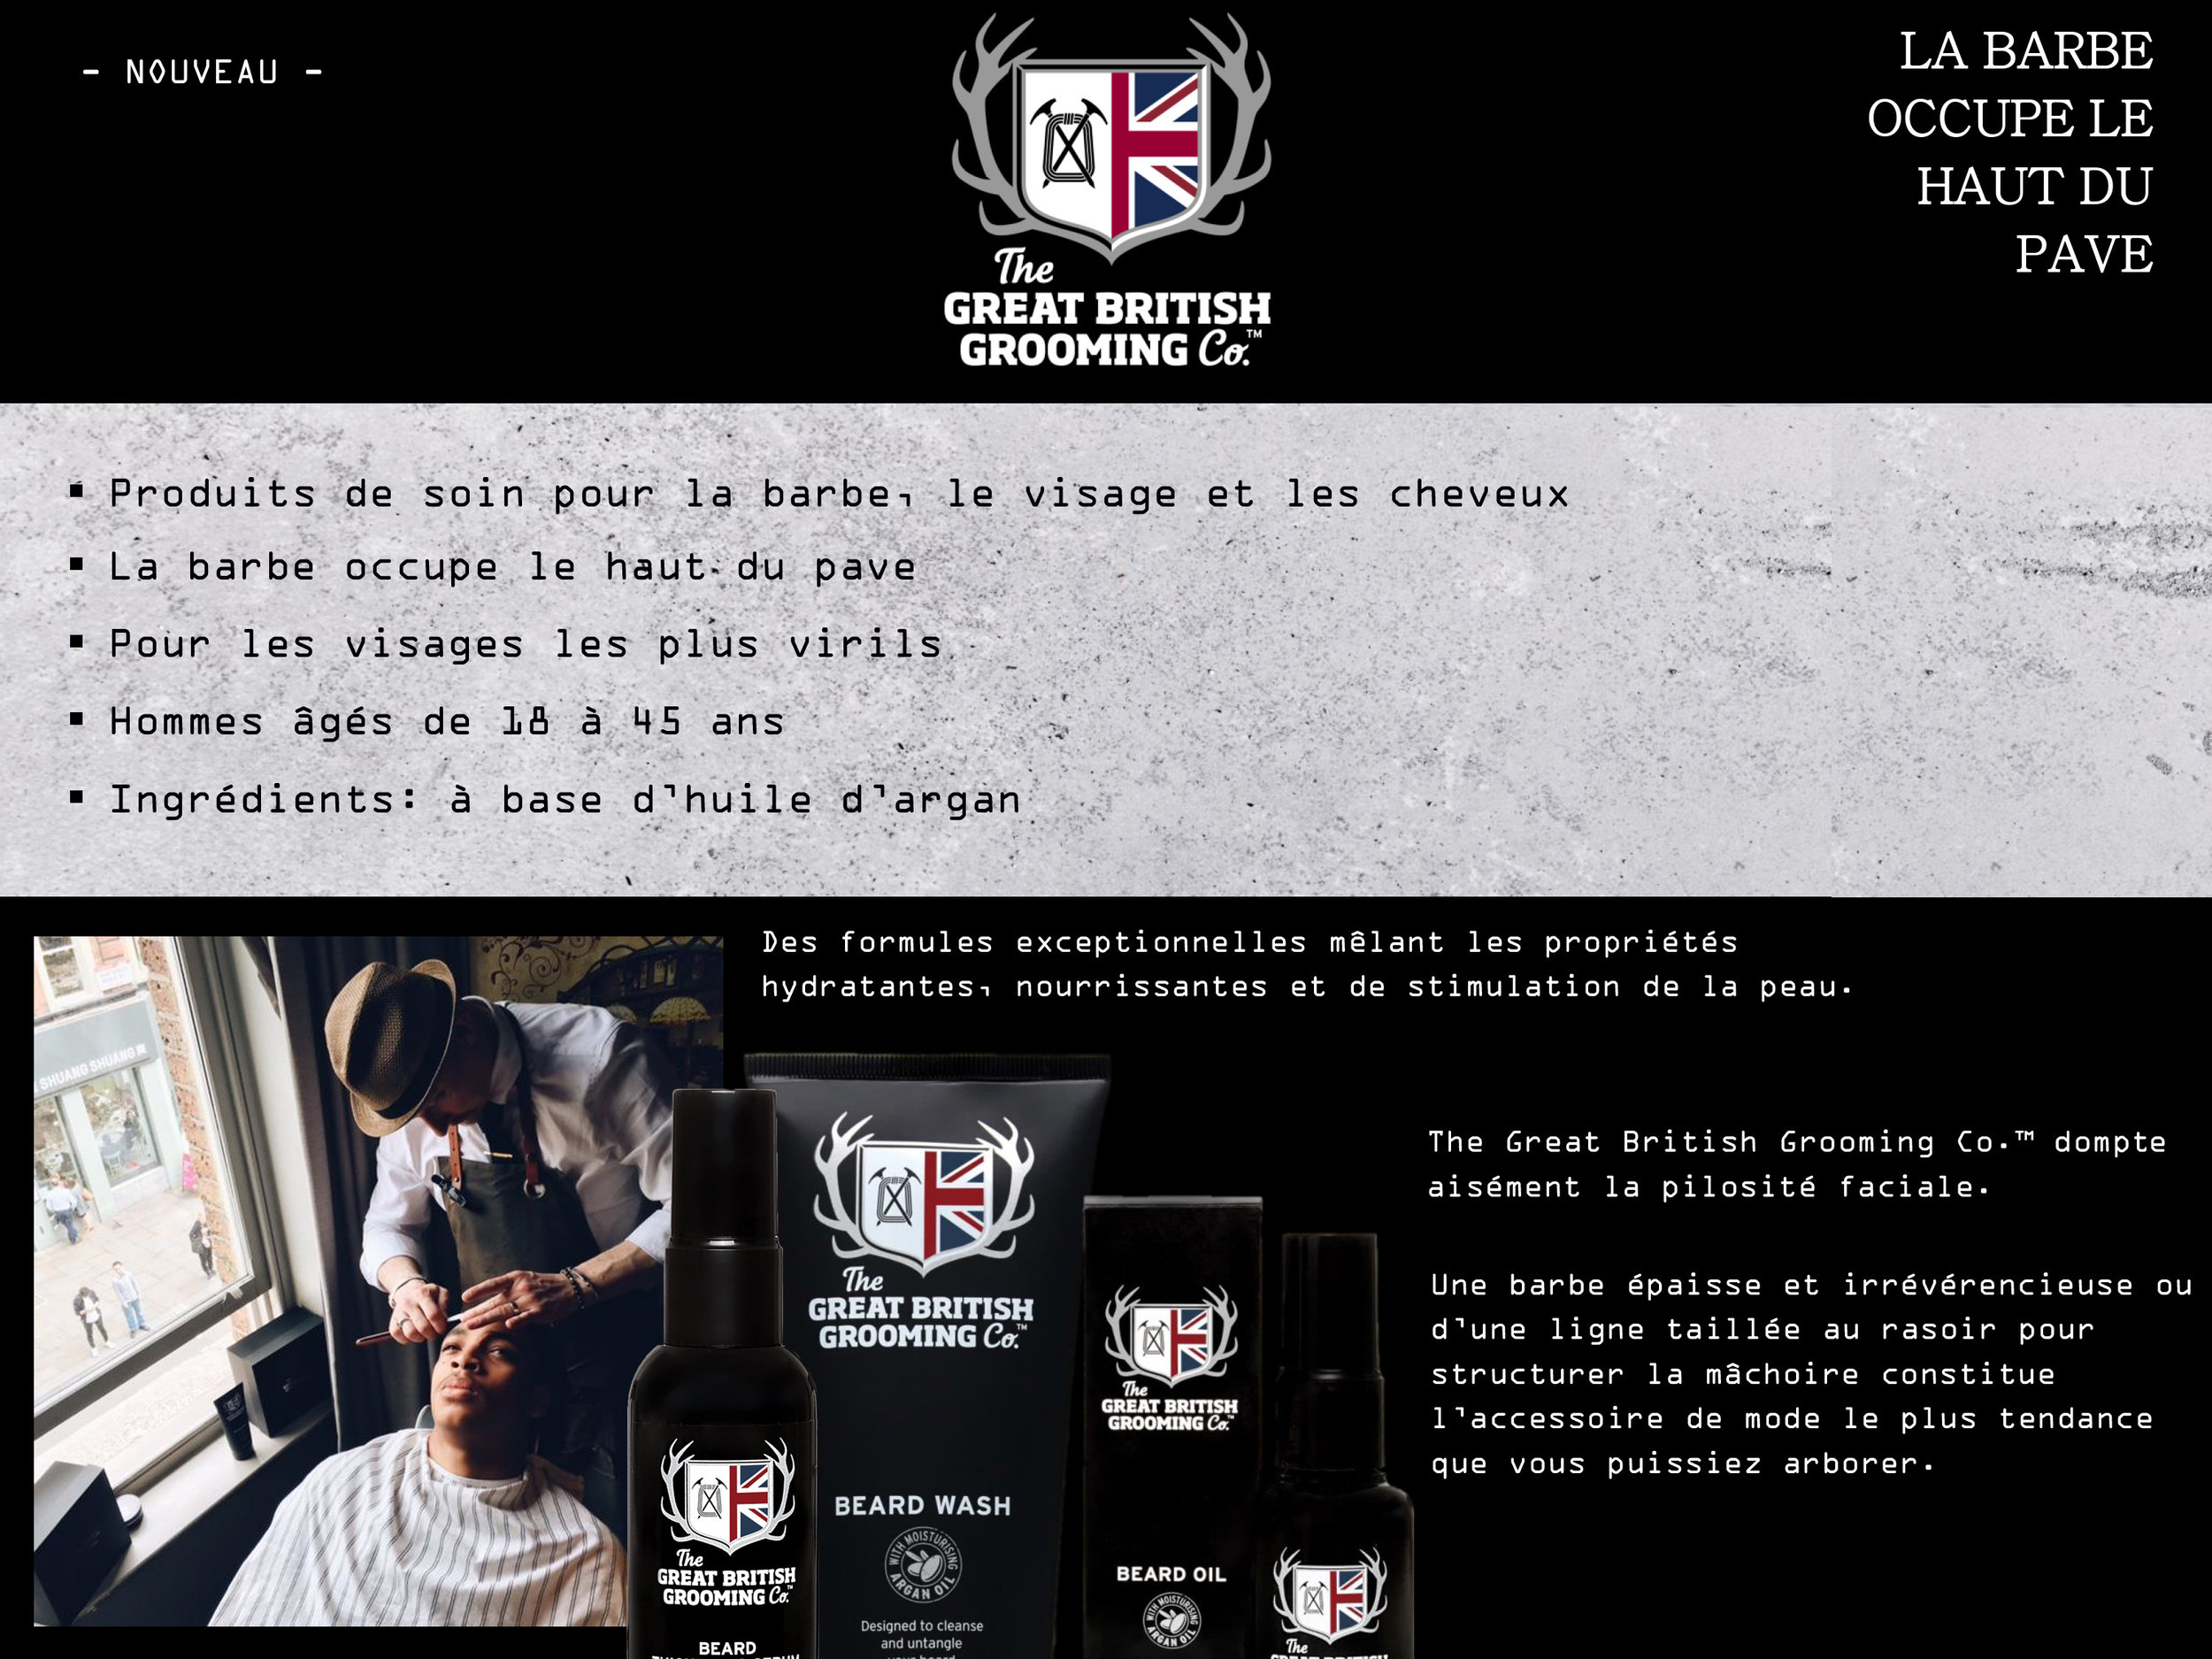 The Great British Grooming Co 1.jpg